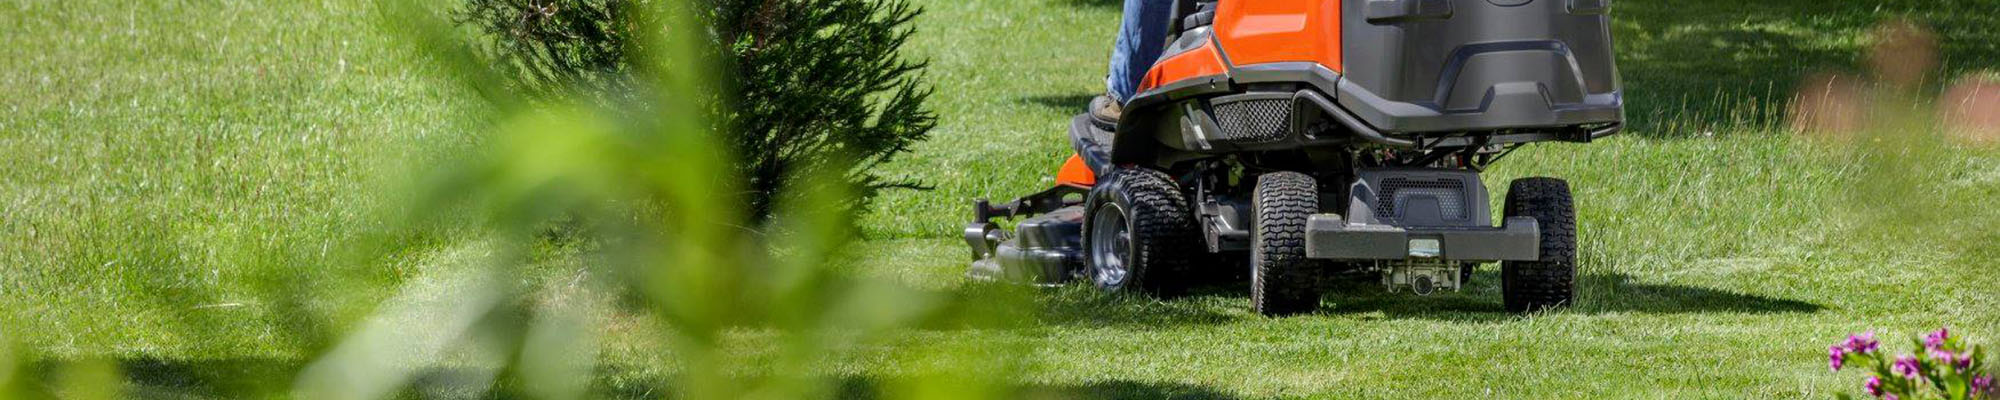 Lawn Mower Brands